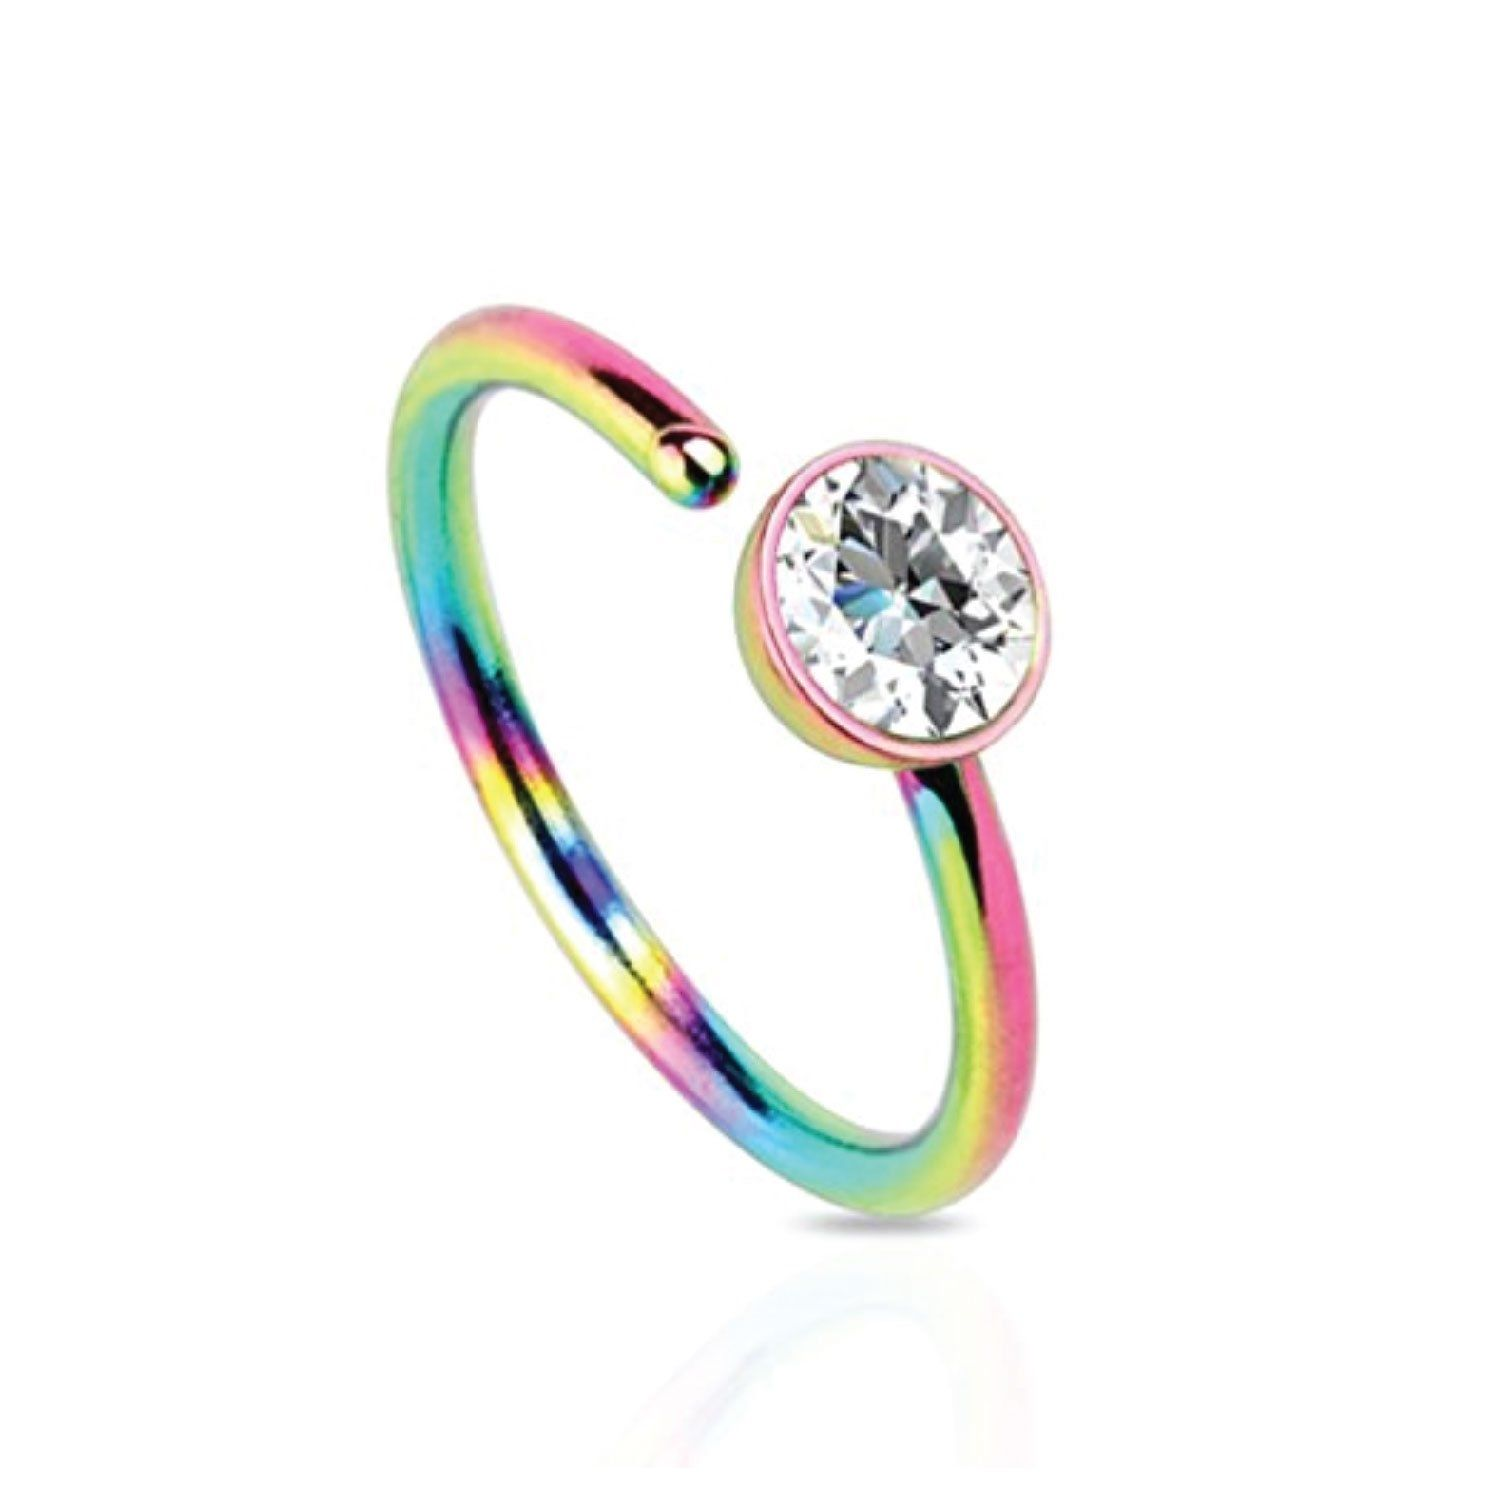 Bodyj4you Nose Ring Hoop Stainless Steel Rainbow Clear Cz Gem 20g